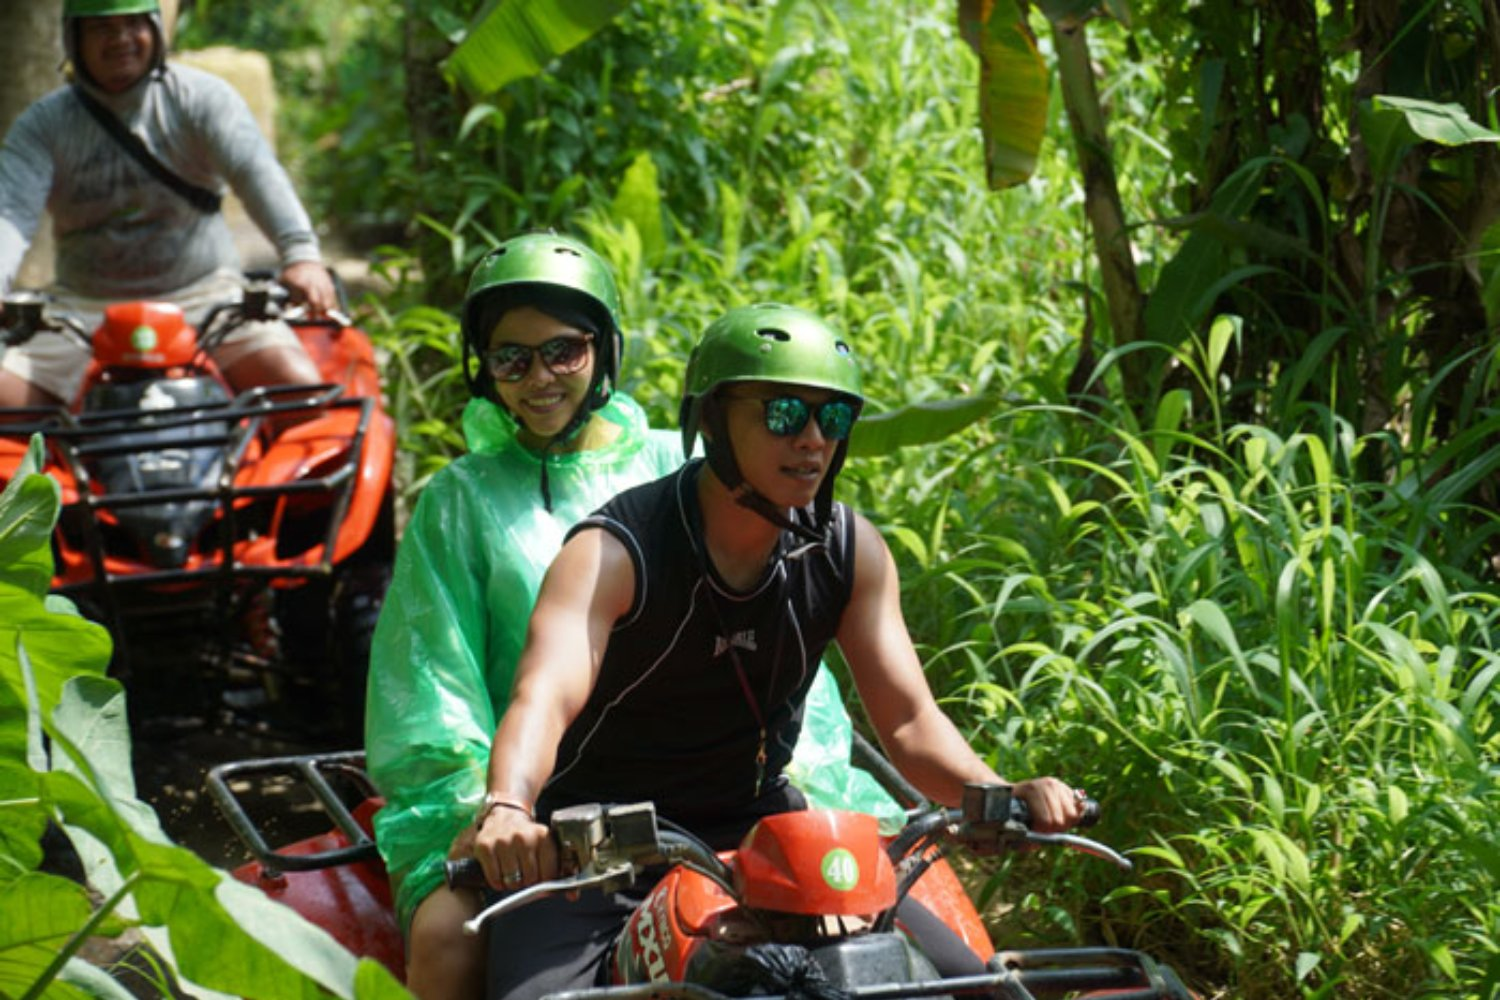 Private Family Quad Bike Adventure in Bali